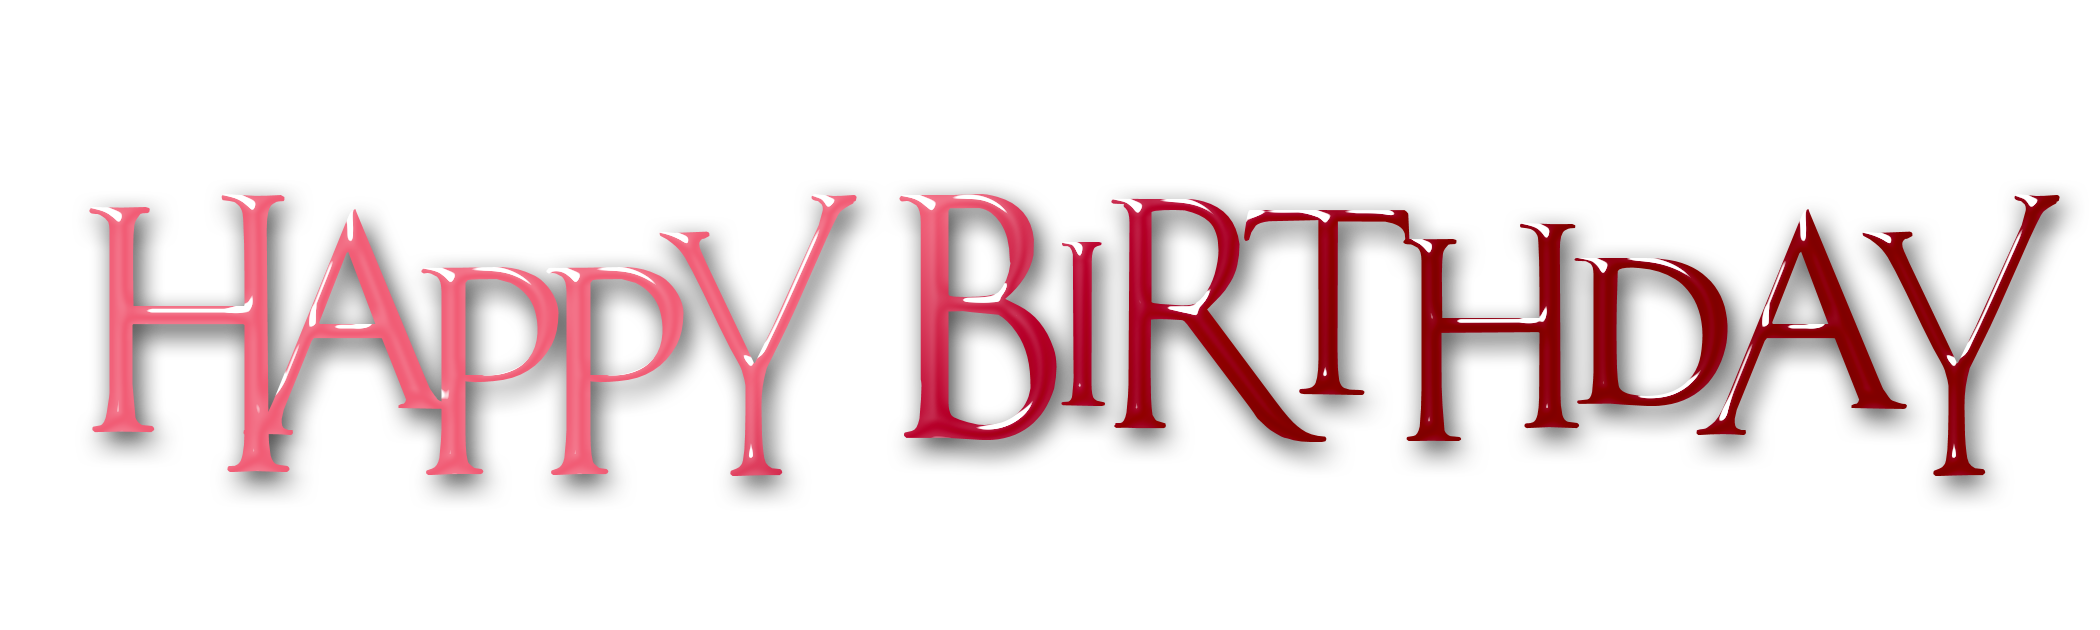 Words clipart happiness. Happy birthday text word